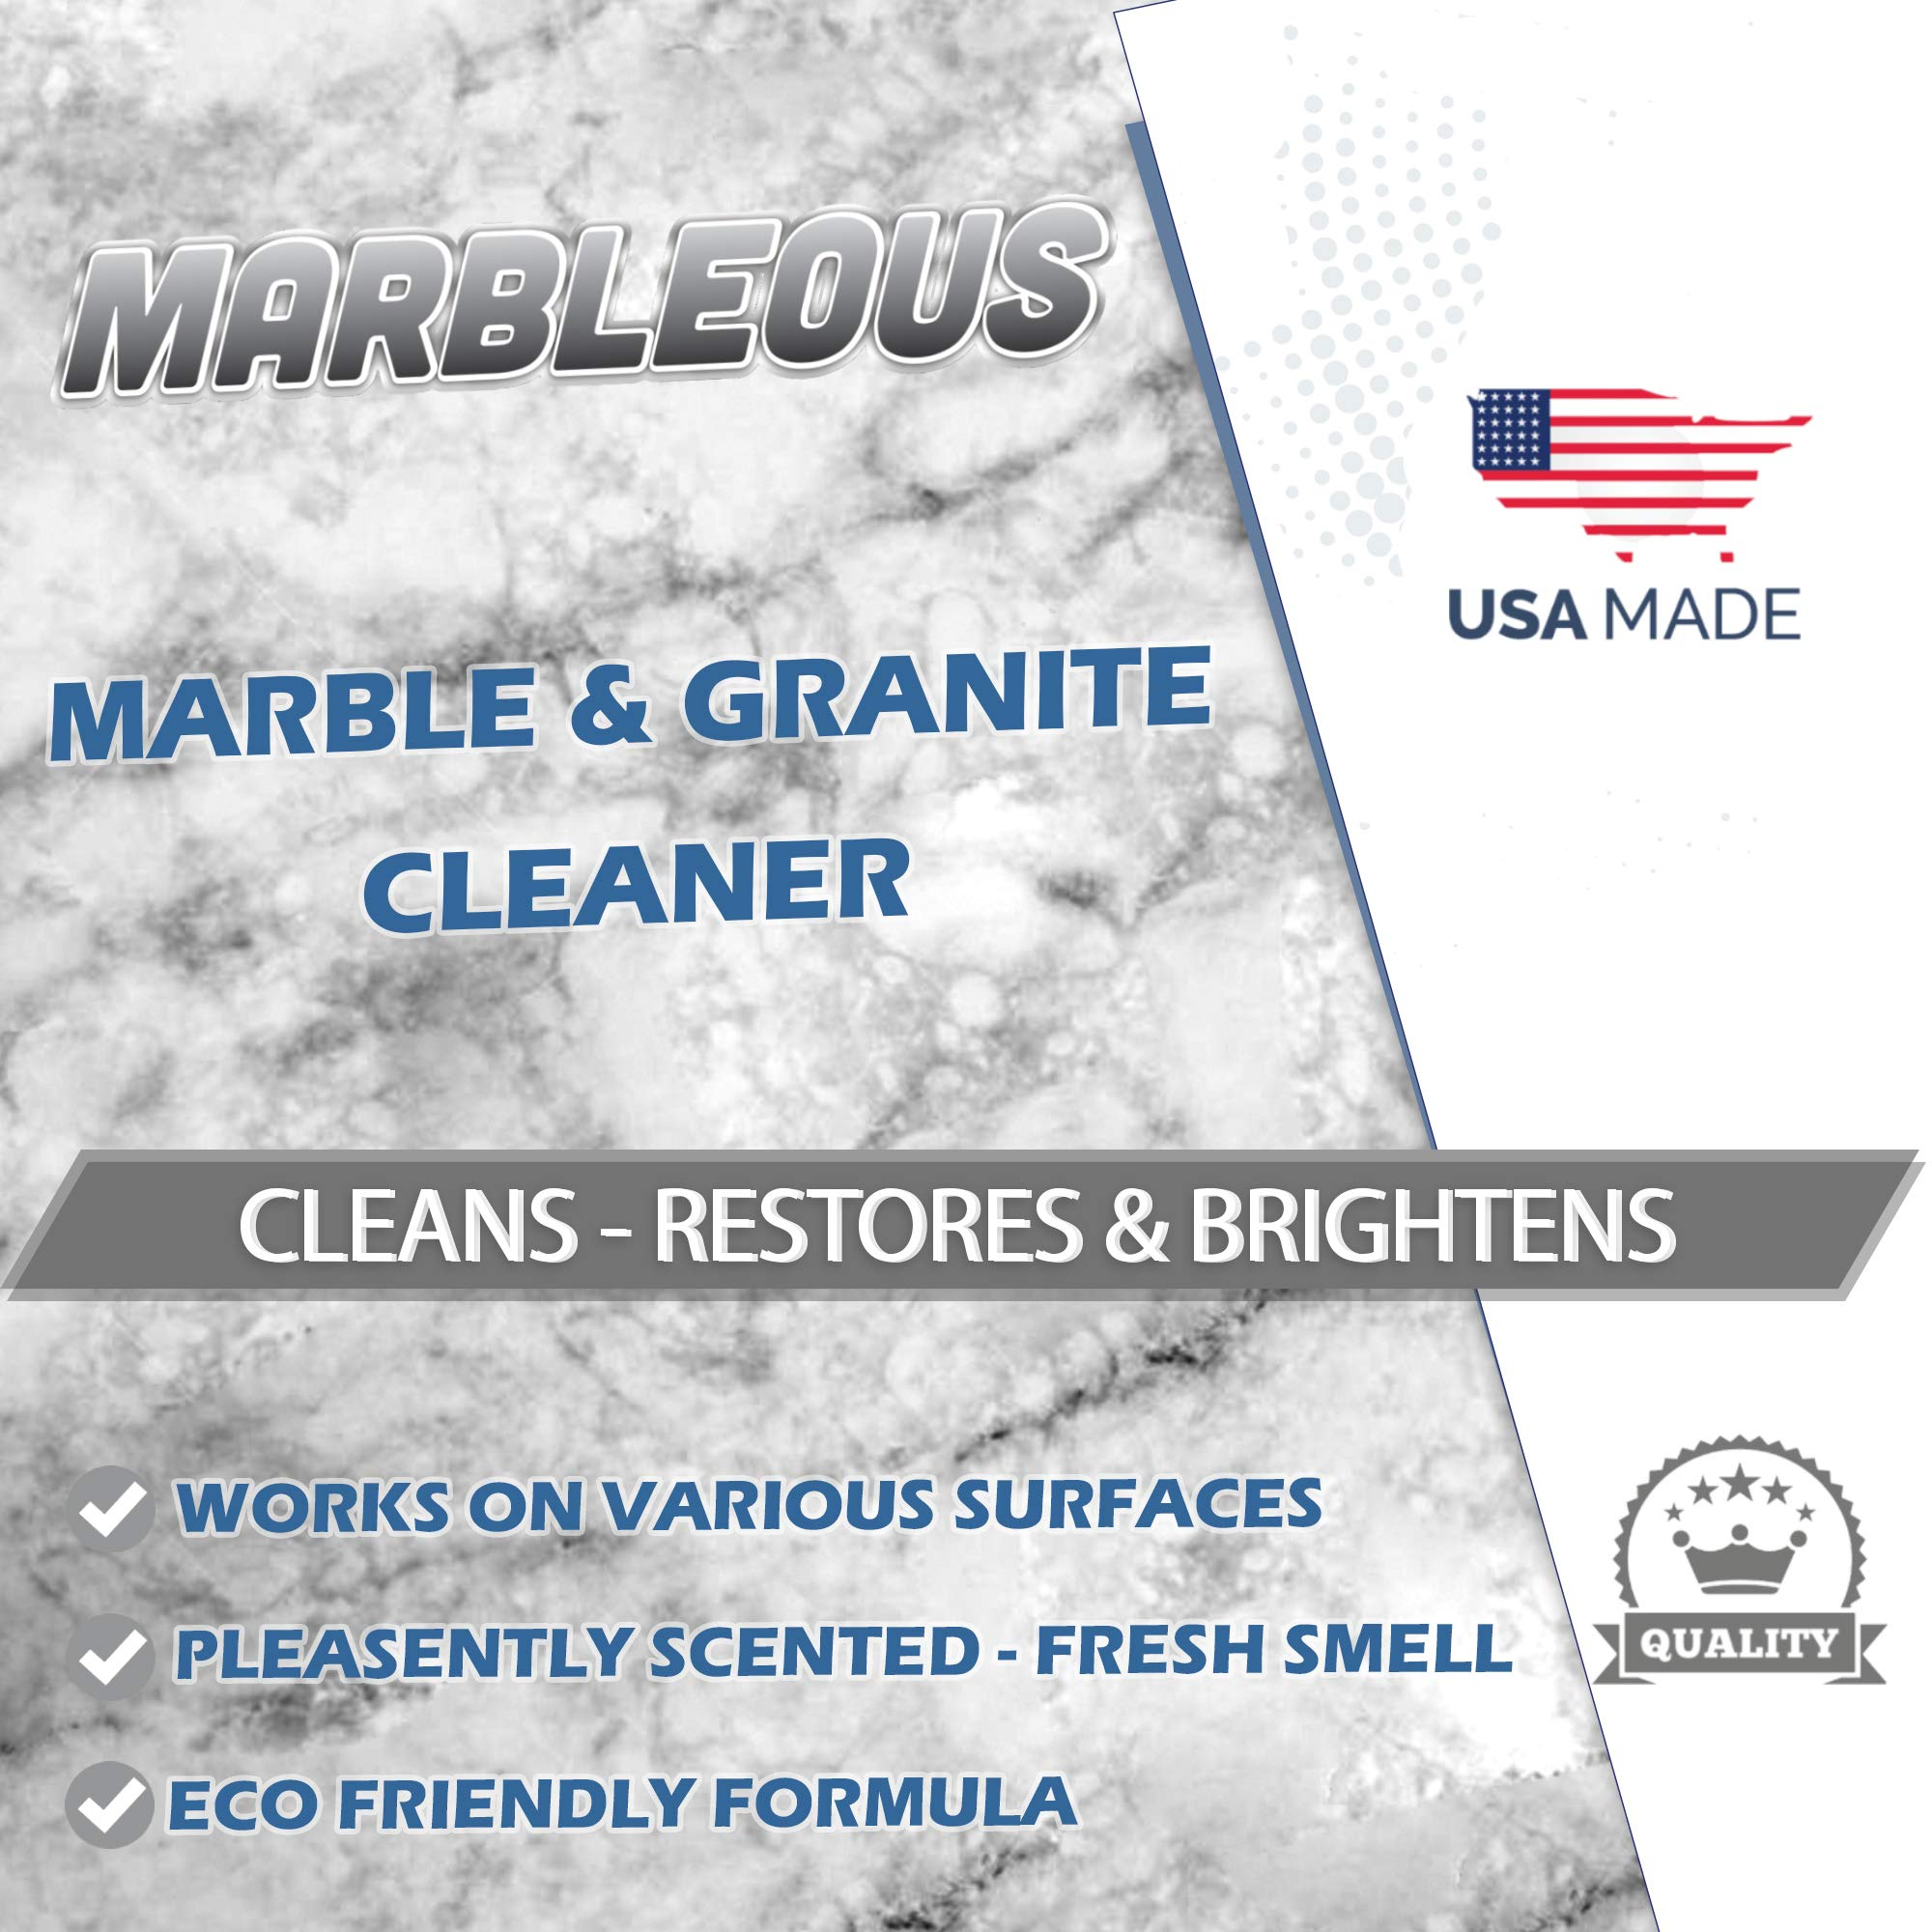 GreenFist Marbleous Marble Cleaner and Other Stone Surfaces Brightener & Restorer [Tile,Countertop,Porcelain,Lime-Stone,Ceramic,Granite,Brick,Vinyl] (1 Gallon) by GreenFist (Image #2)